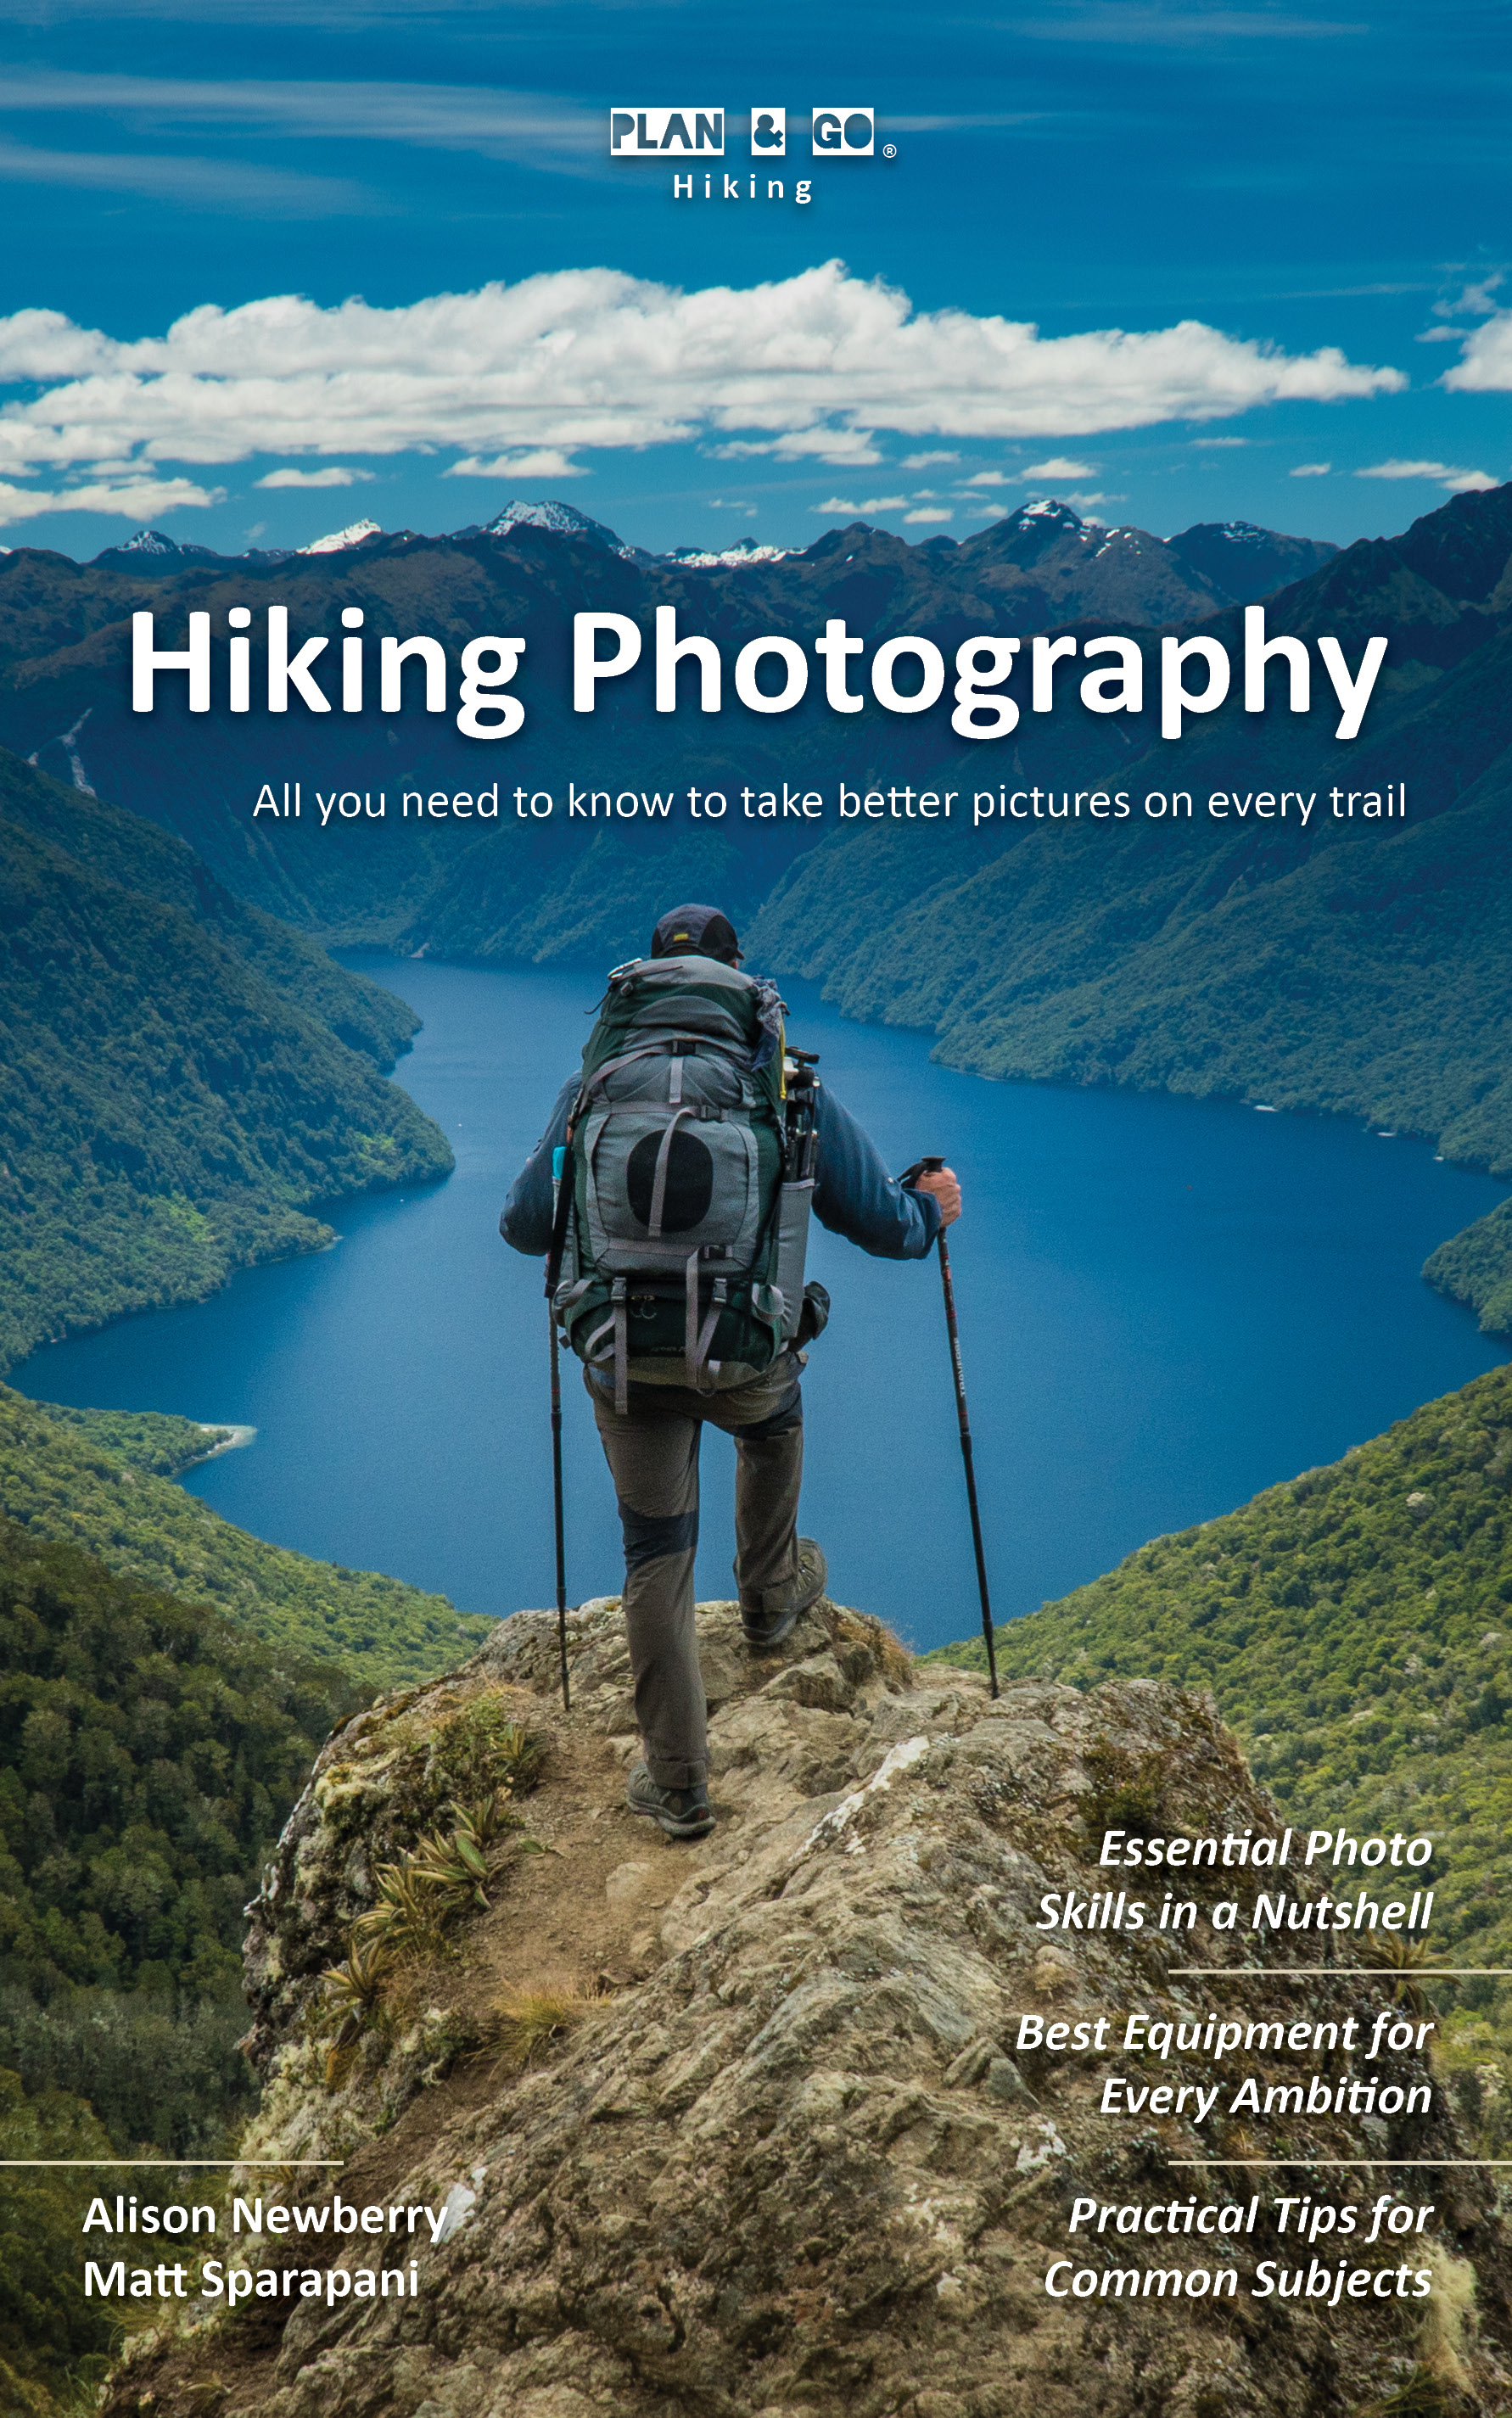 Plan & Go | Hiking Photography: All You Need to Know to Take Better  Pictures on Every Trail, an Ebook by Alison Newberry & Matt Sparapani